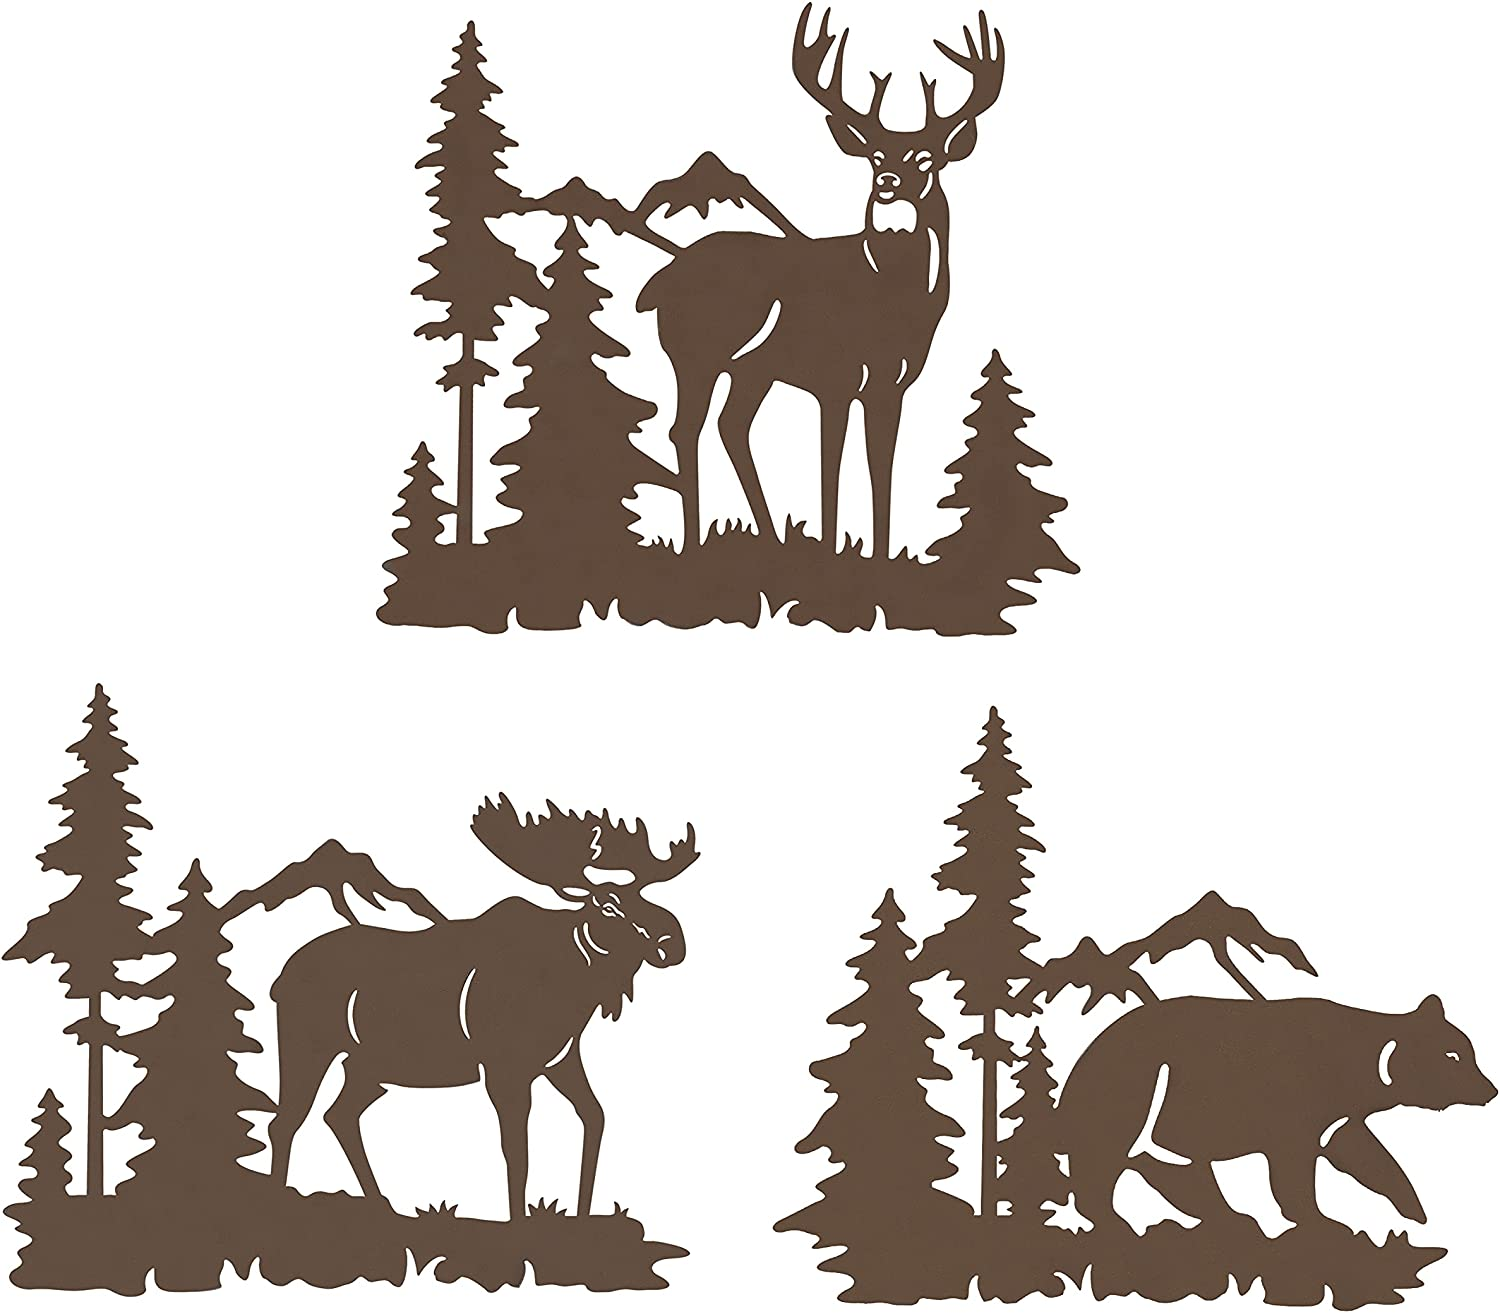 Waiu Metal wall art decor deer bear moose in the forest pine tree, 9.3inch set of 3 Rustic Concise Decoration Hanging for living room bedroom bathroom indoor outdoor, Lodge, Hunting, Cabin Wall Décor, Brown